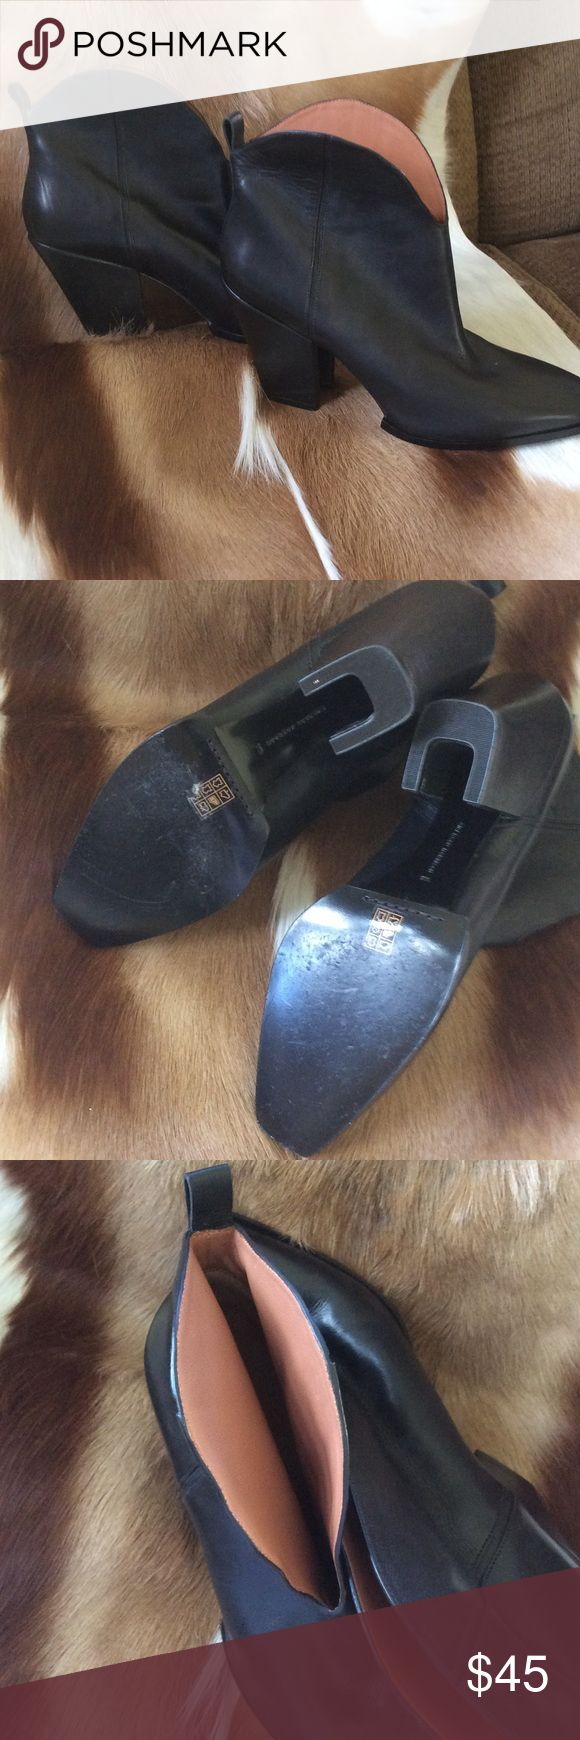 Boots Beautiful never worn boots Sigerson Morrison Sigerson Morrison Shoes Ankle Boots & Booties